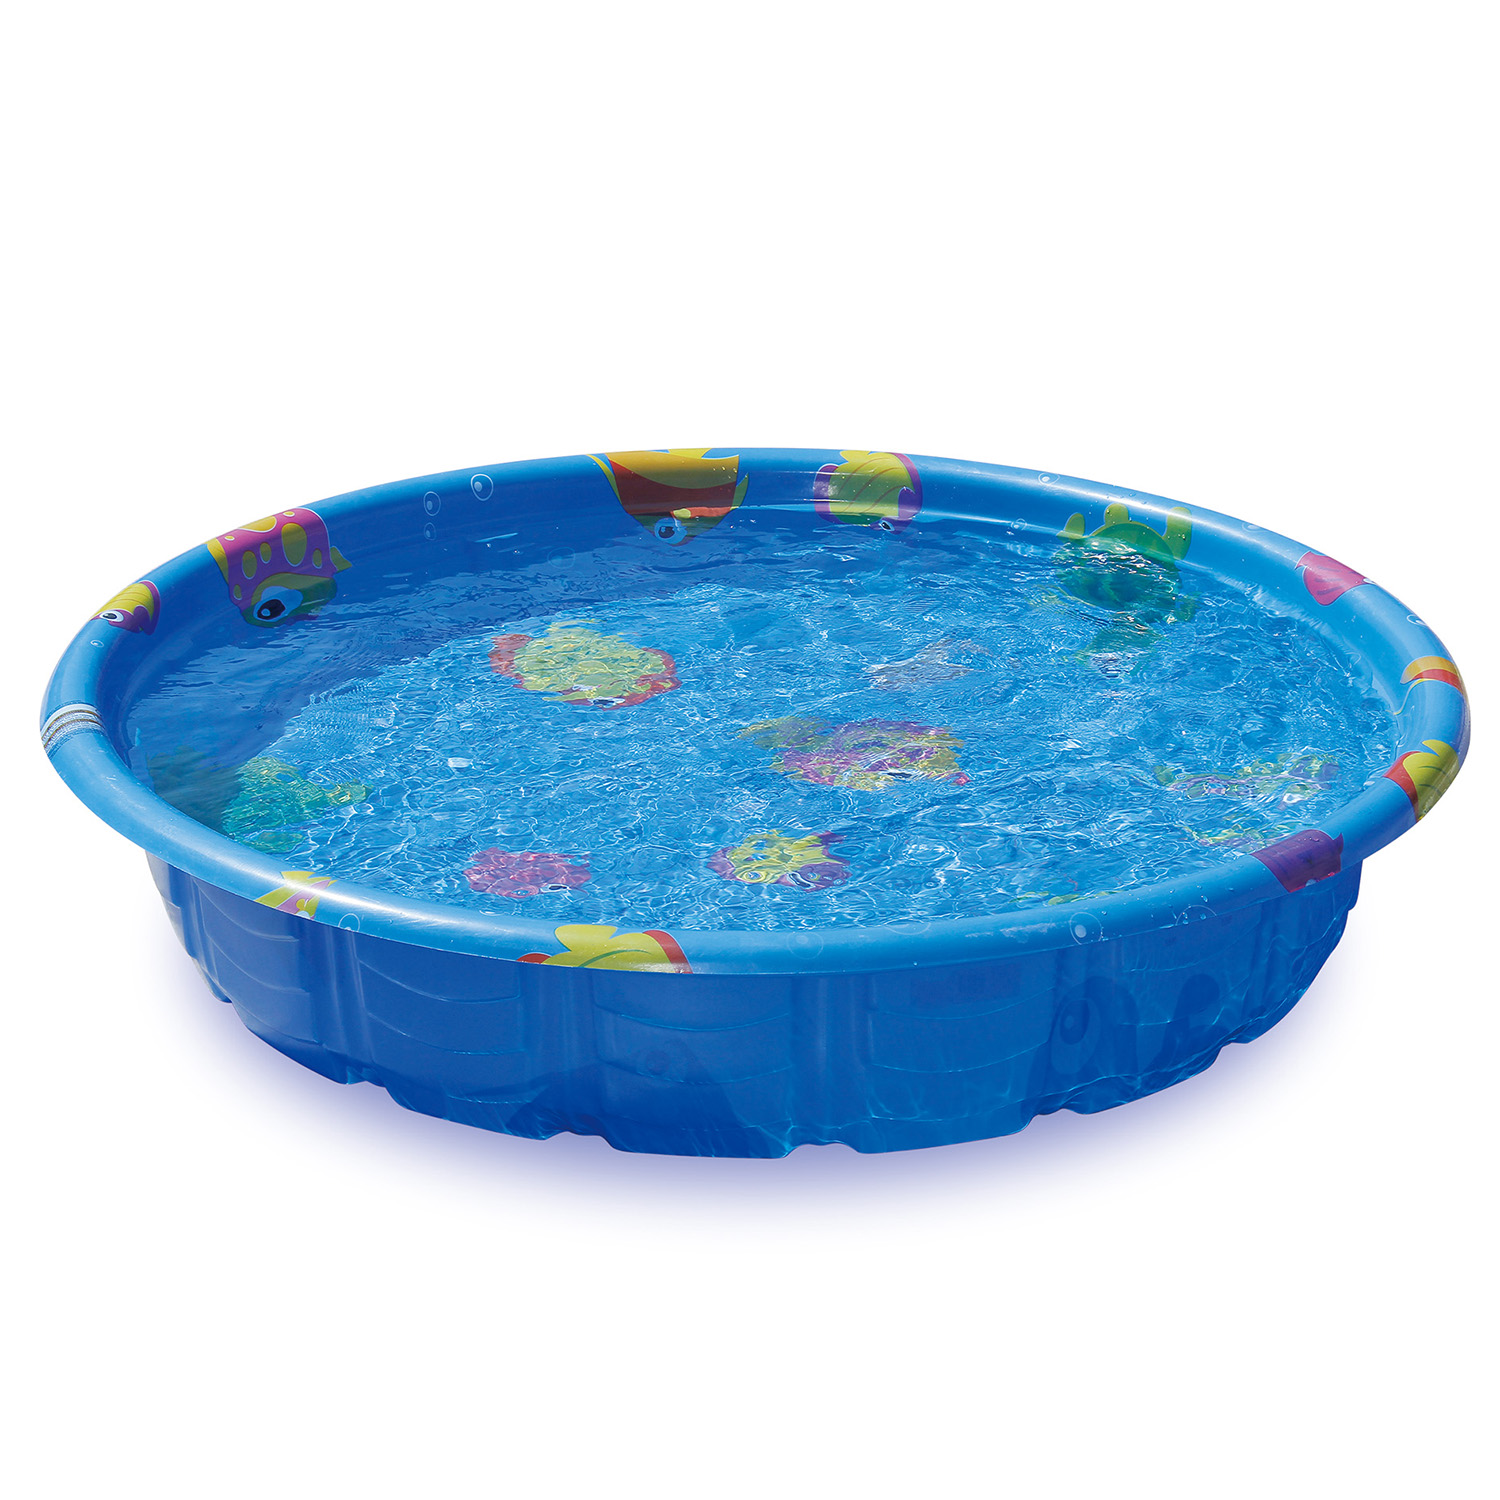 LARGE MOLDED POOL - ASSORTED COLORS